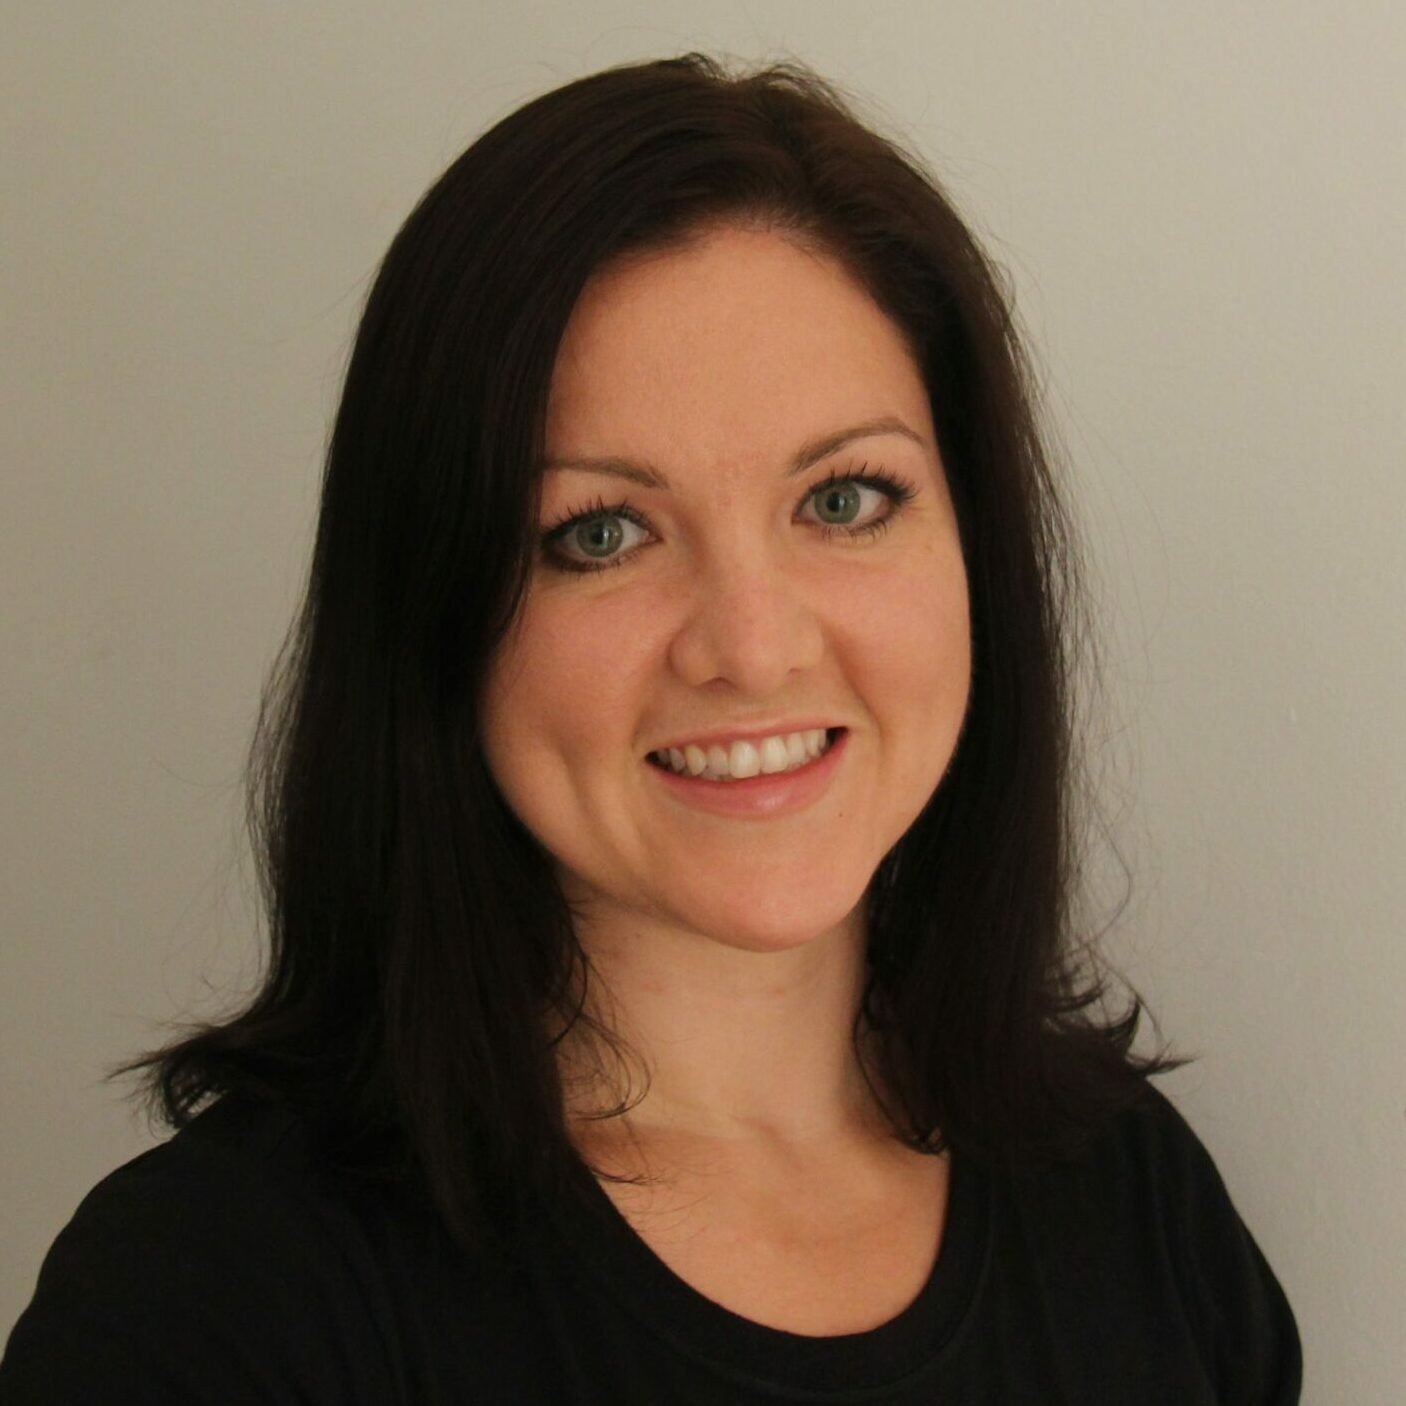 Lisa Flanders, Registered Physiotherapist in Ottawa with specialized training in pelvic floor physiotherapy.